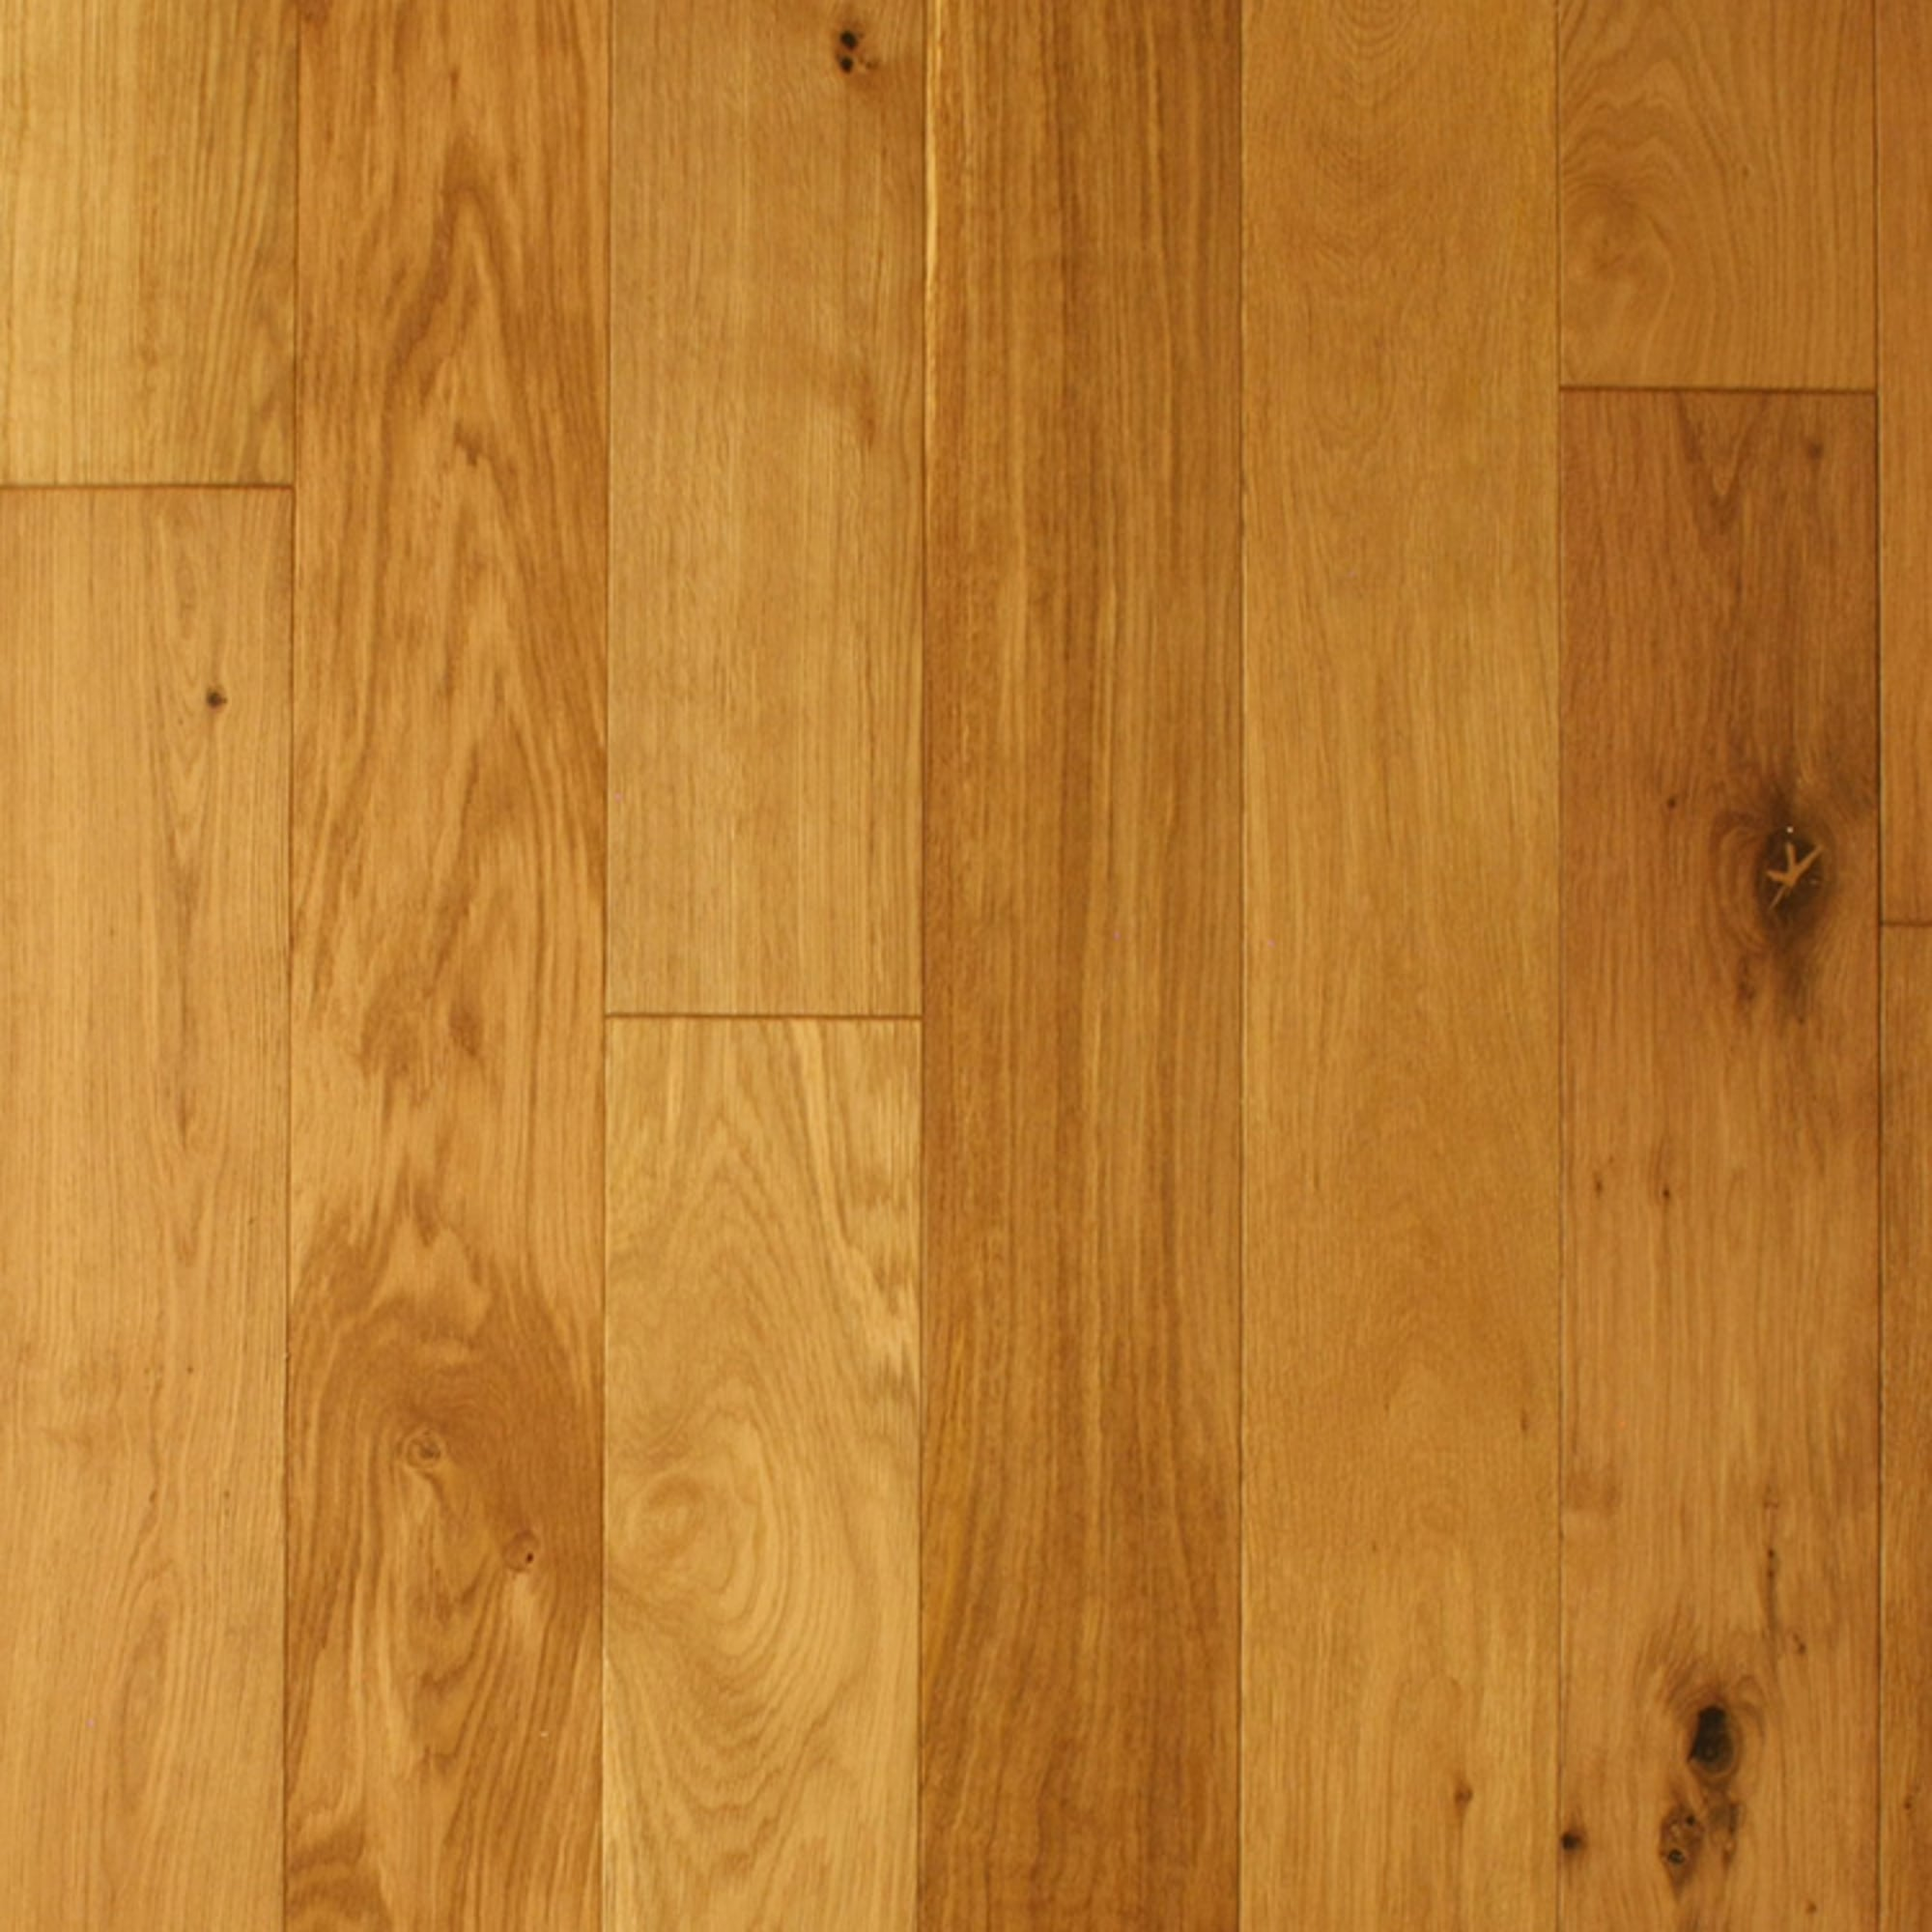 Wood flooring multi layer 18x150mm brushed oiled for Engineered oak flooring